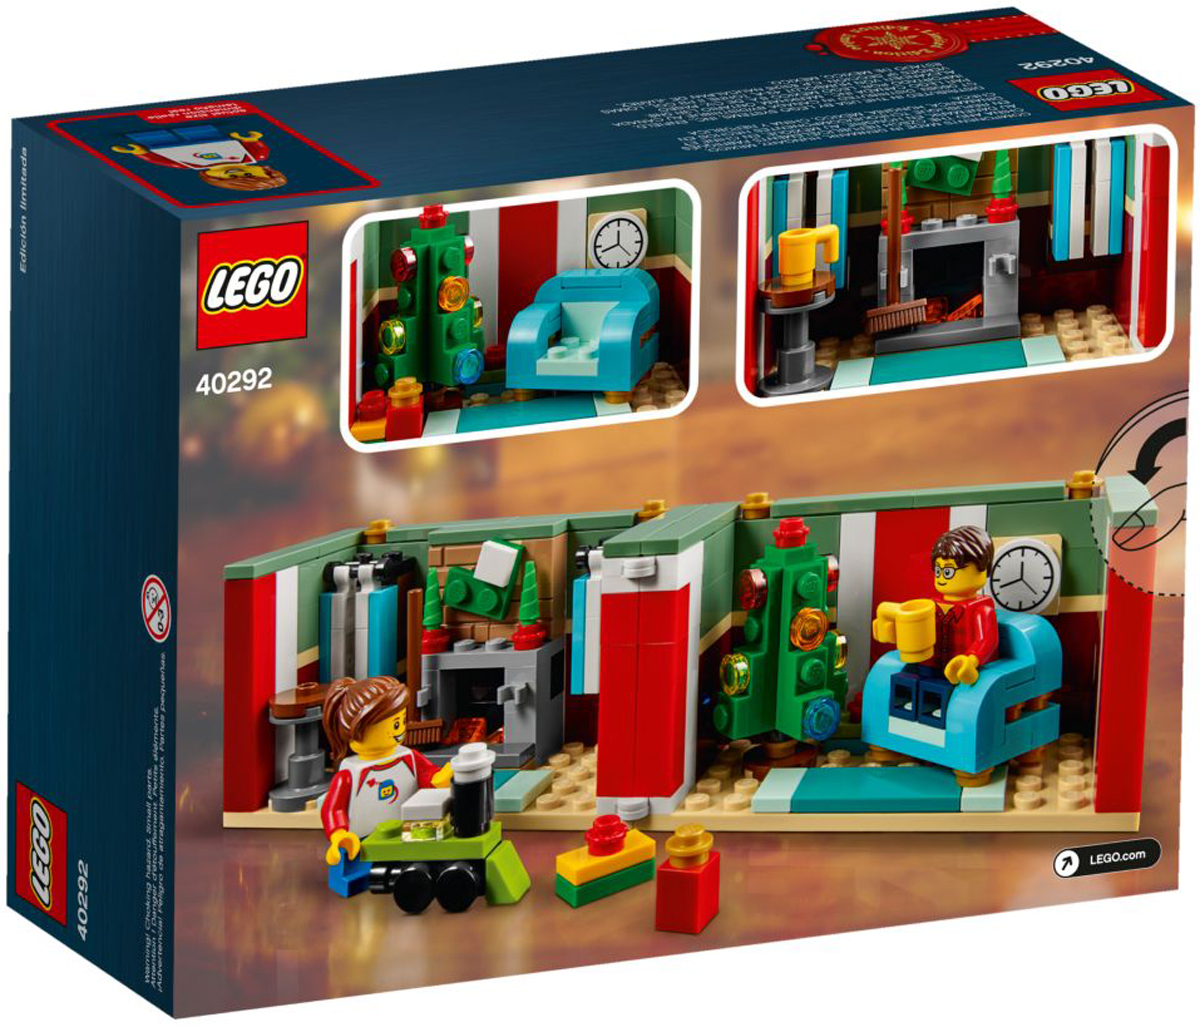 Lego Christmas Gift Box 40292 Promotional Set Still Up